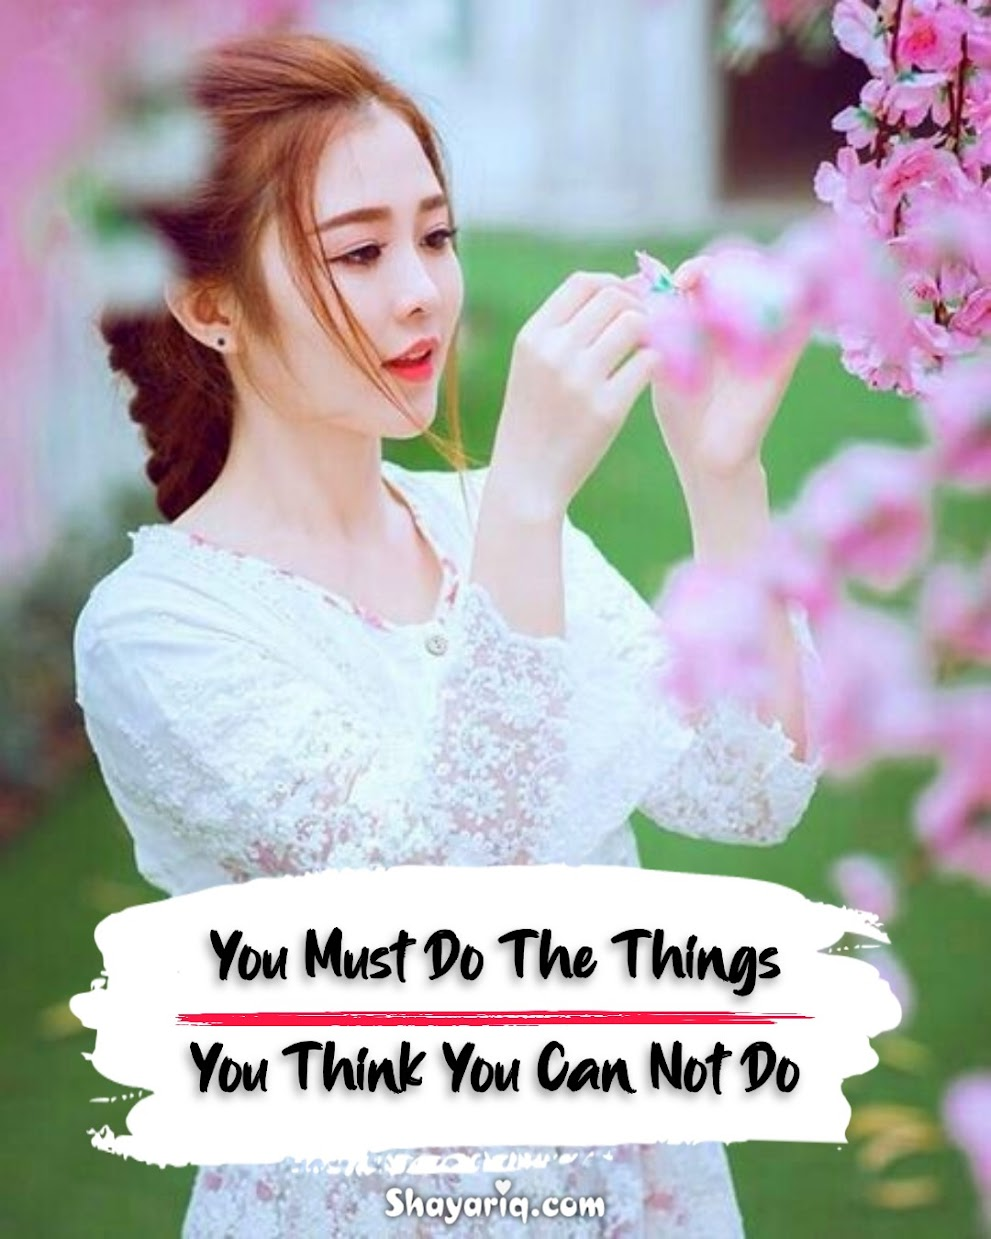 You Must Do - Motivational Quotes